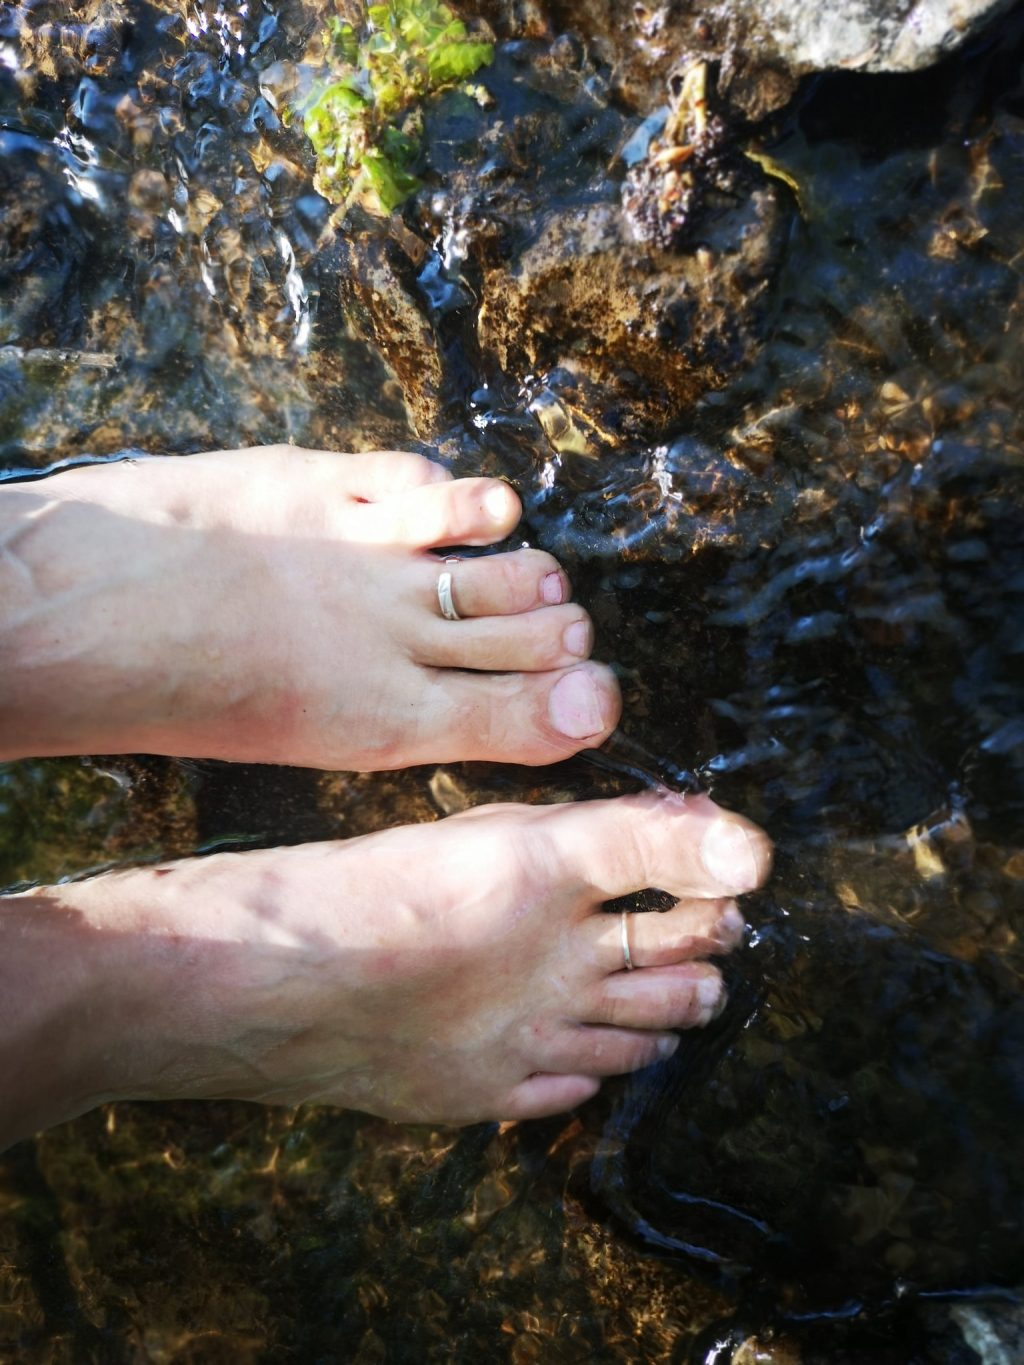 Bare feet paddling in clear shallow water